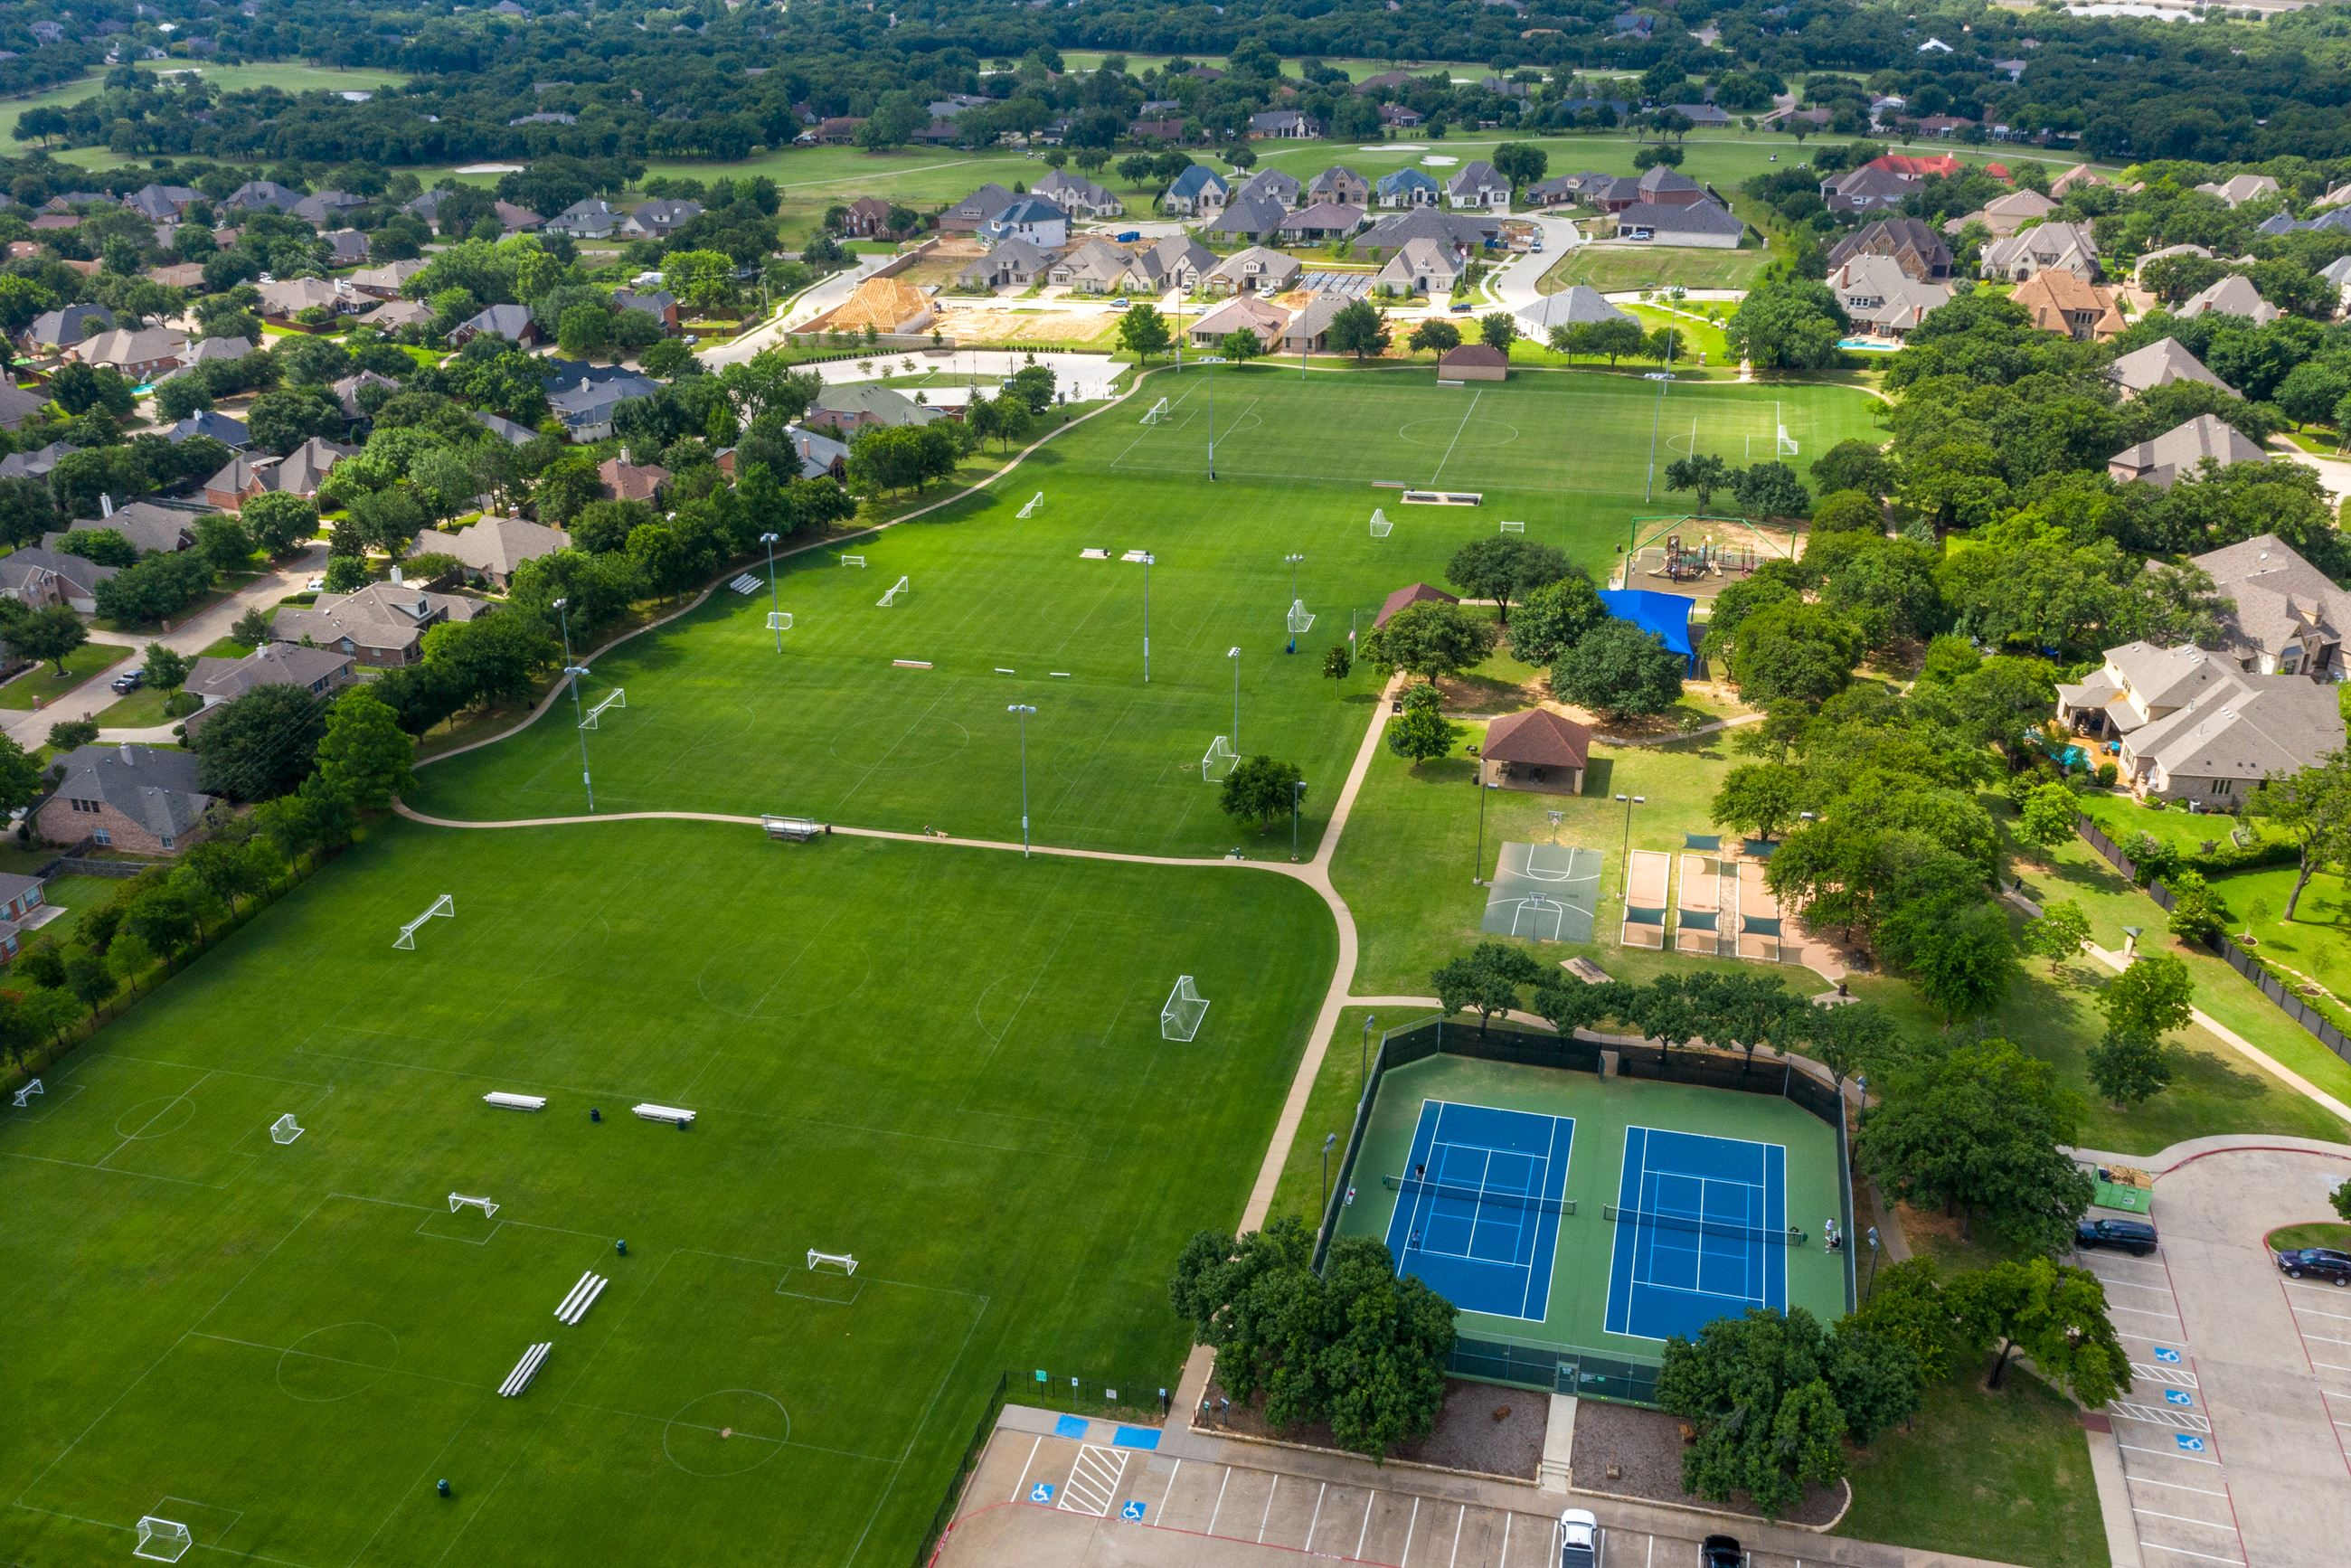 Overhead view of Harmony Park